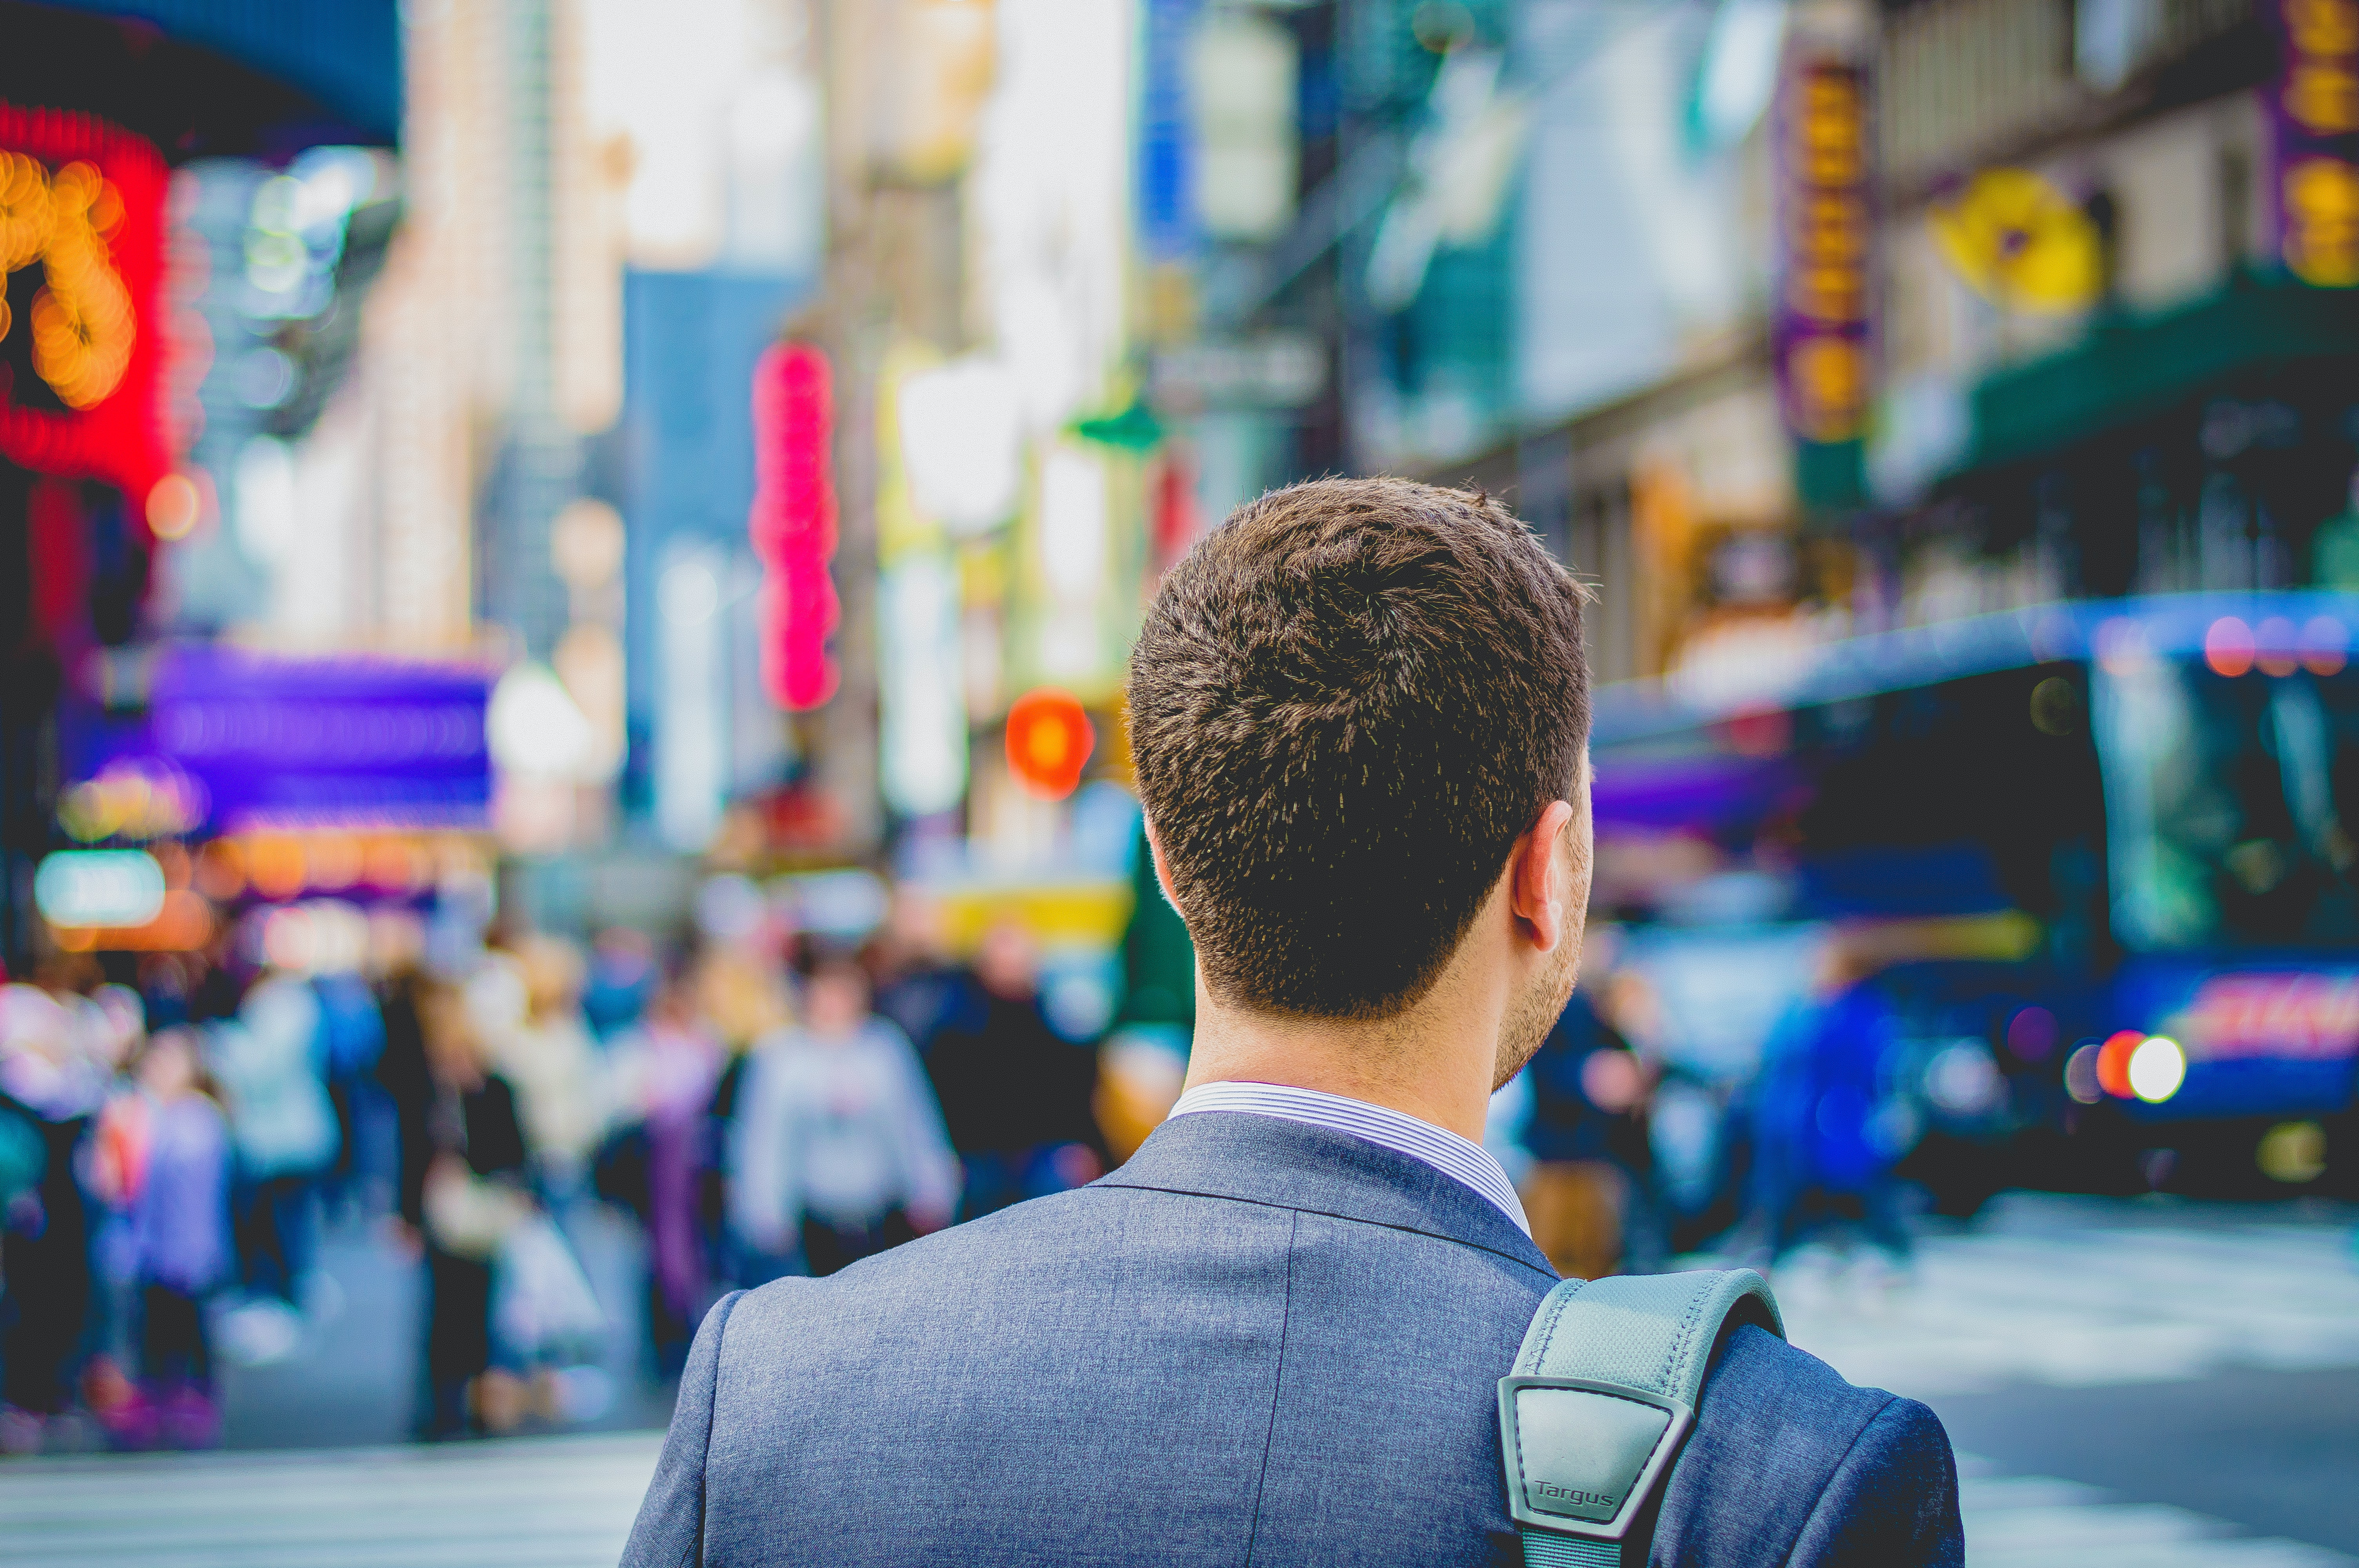 Considering a change of career direction? Here's why you should consider a contract role overseas